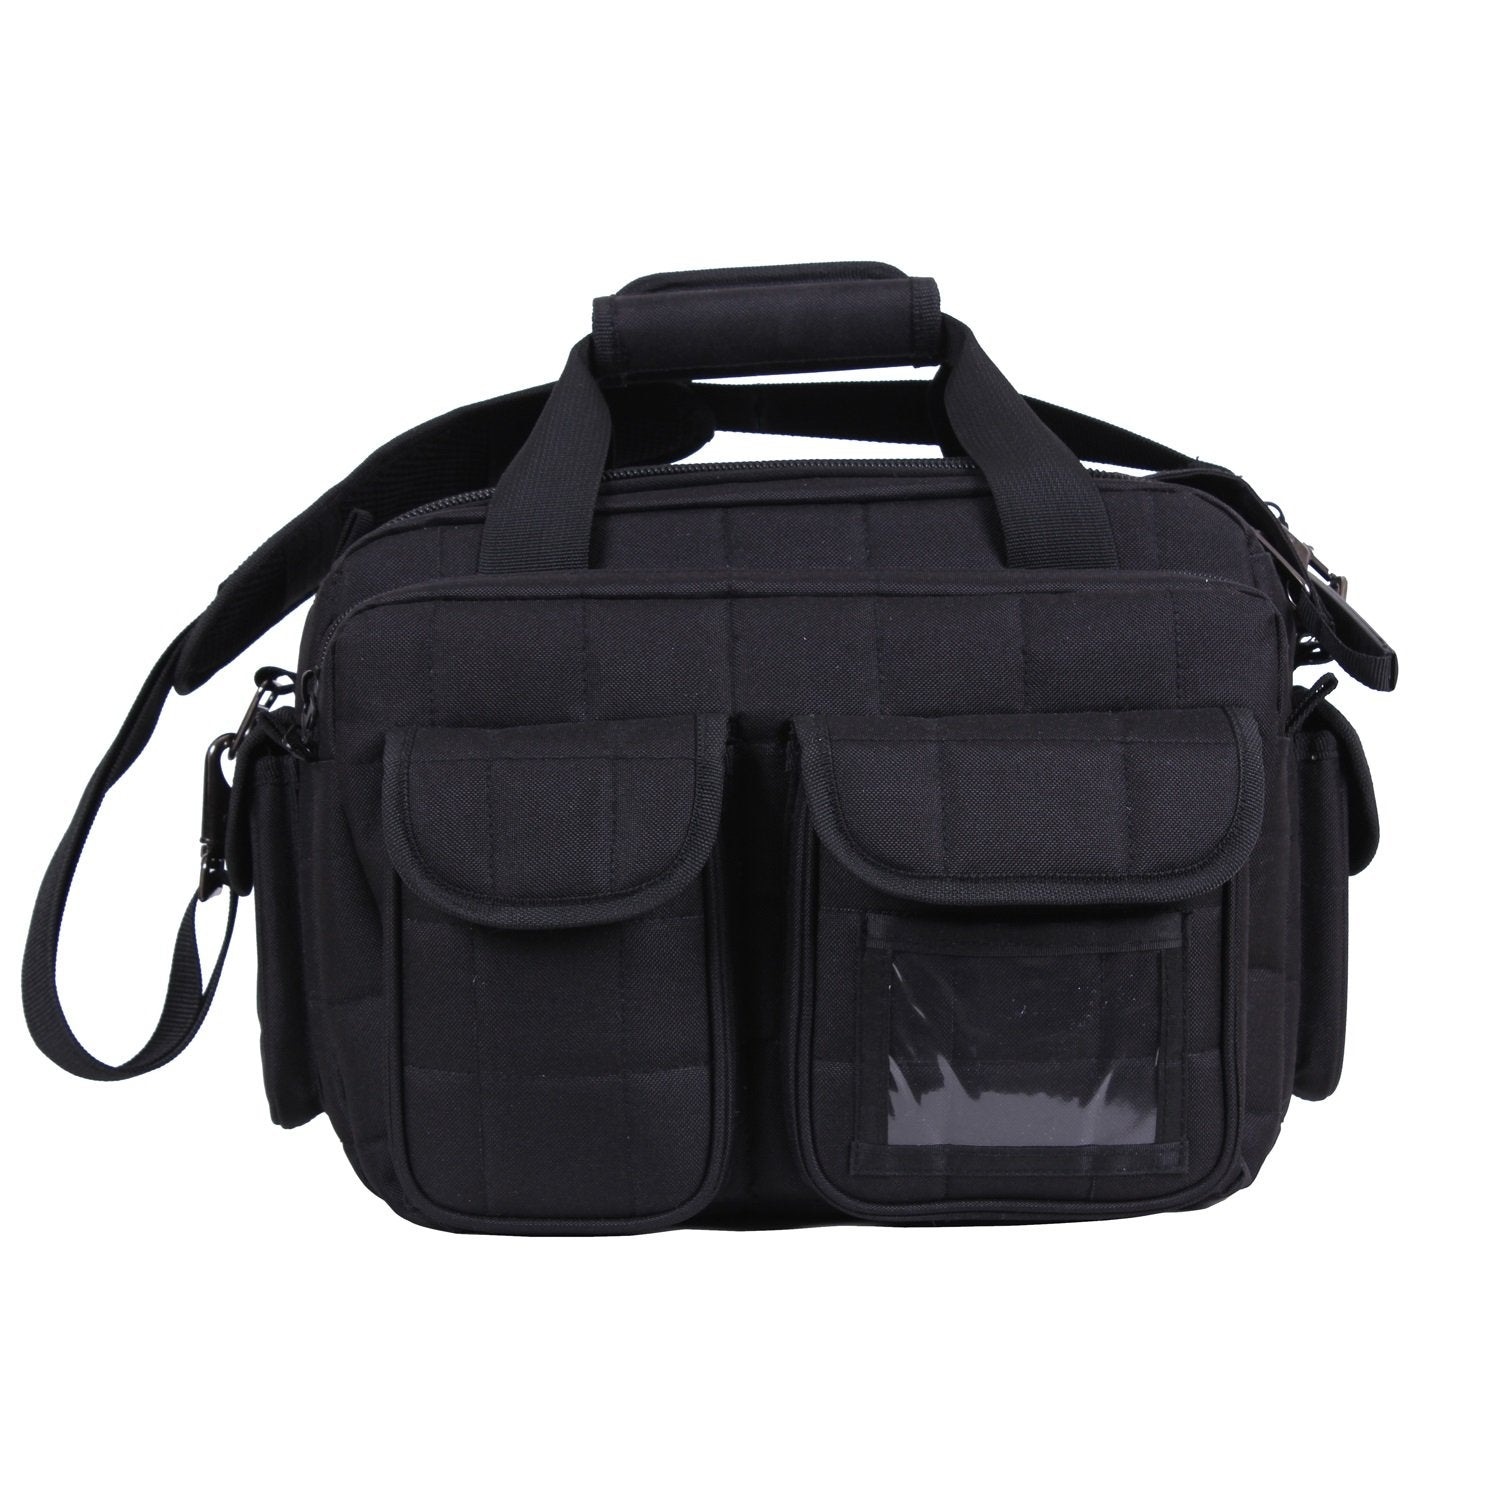 Specialist Range & Carry Bag